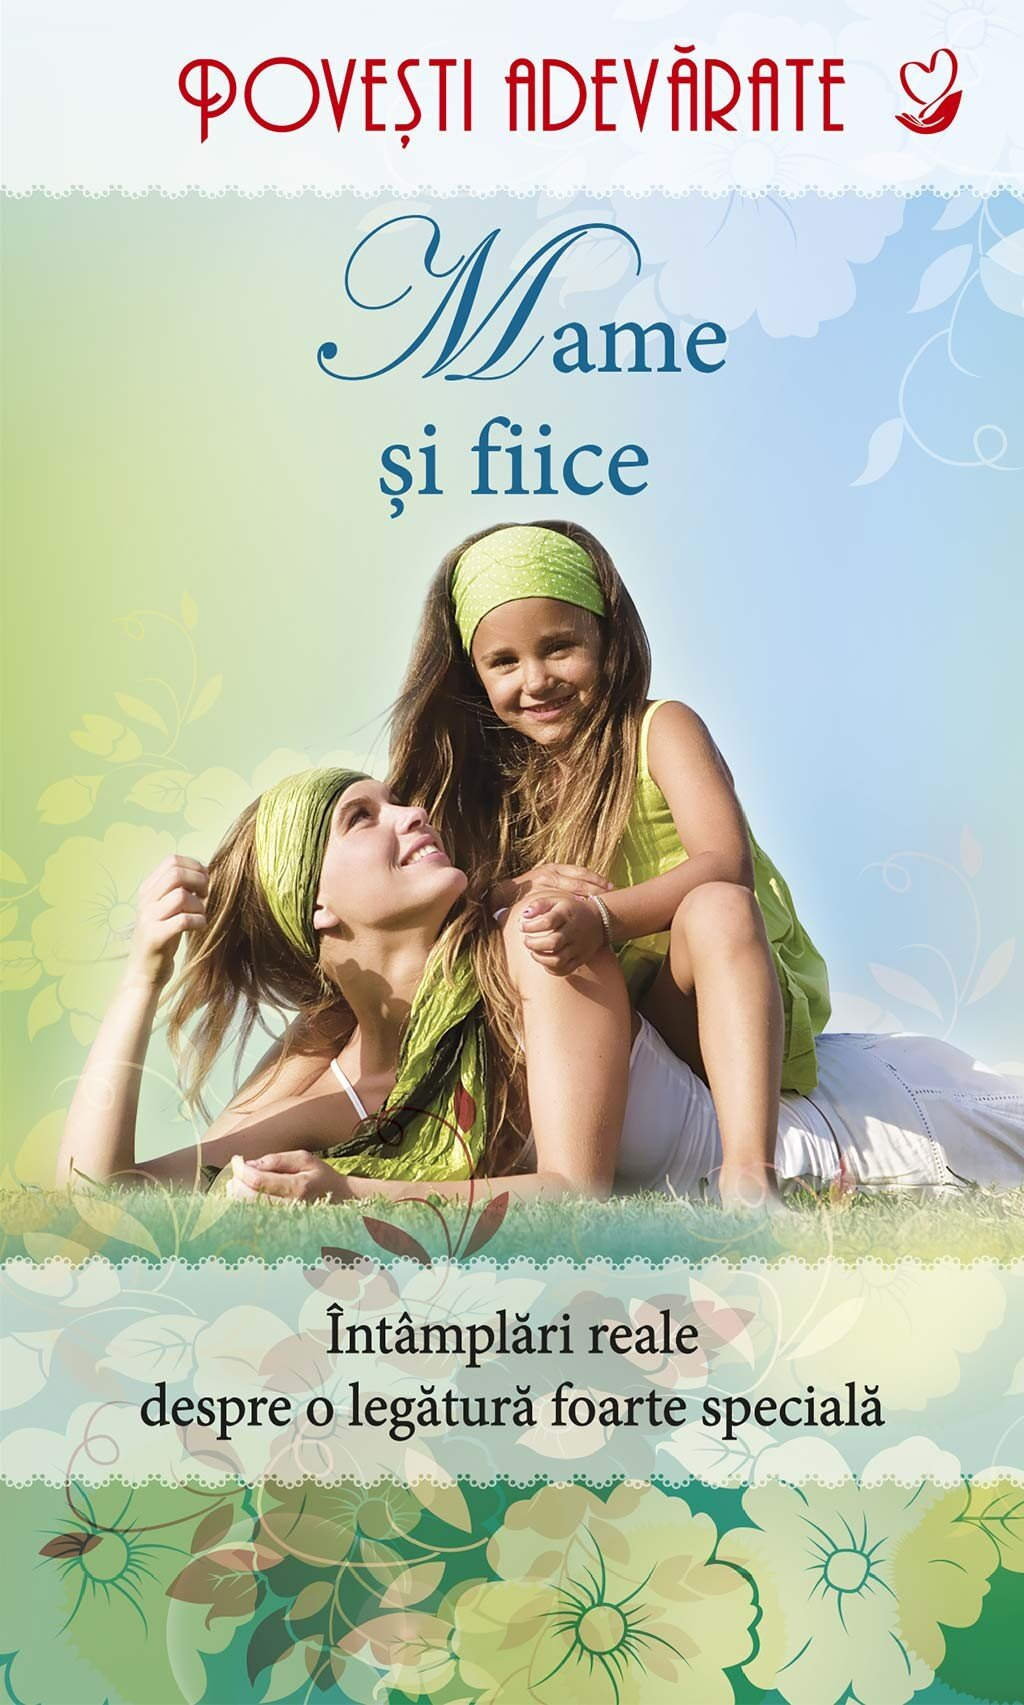 Mame si fiice. Povesti adevarate. Vol. 5 (eBook)